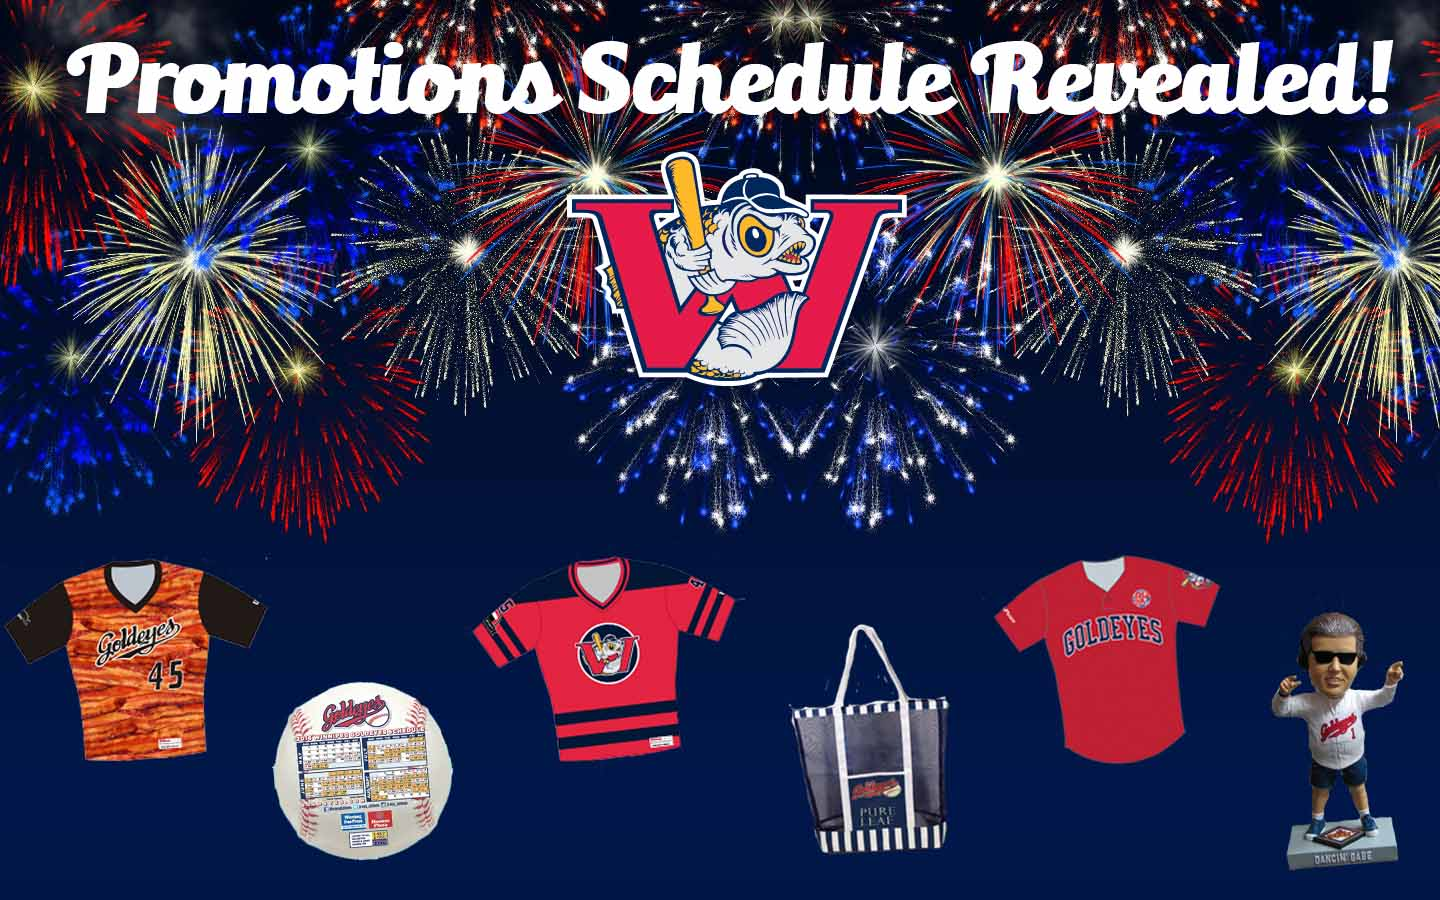 Goldeyes Reveal 2016 Promotions